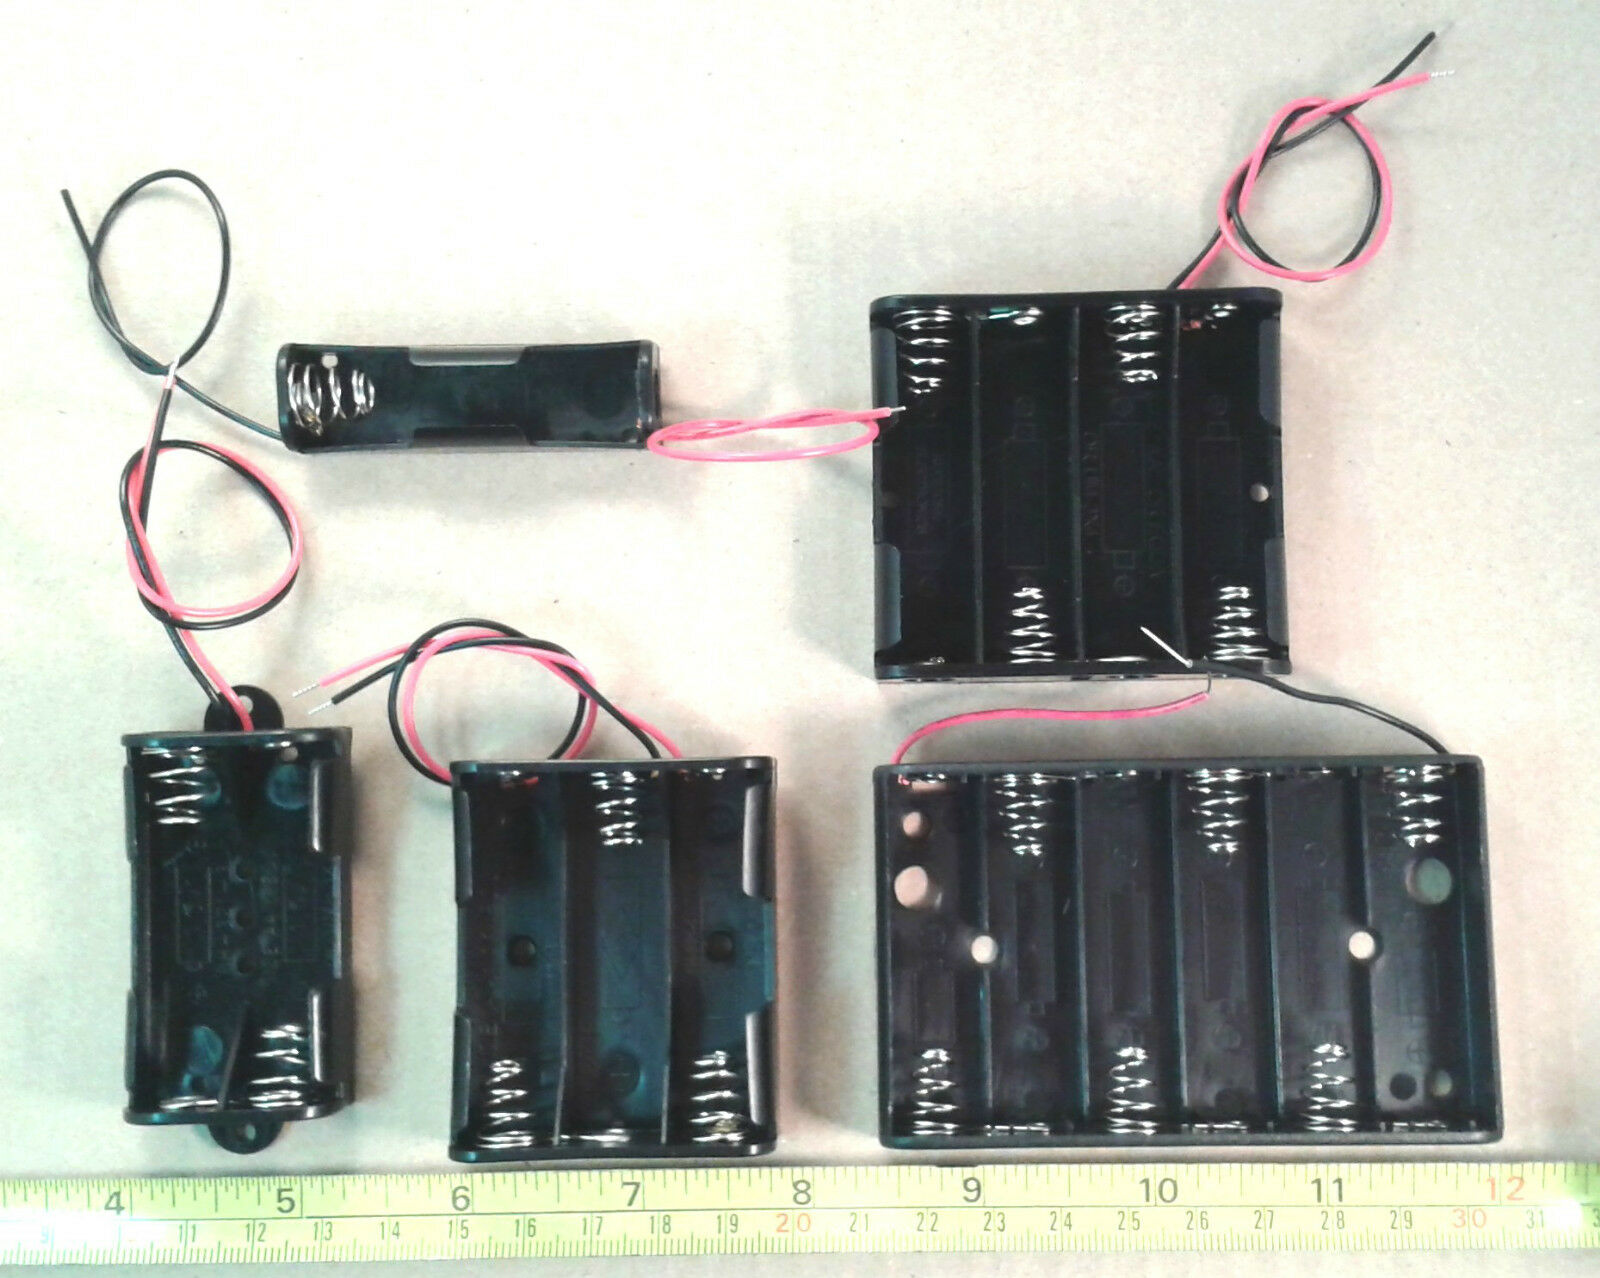 AA / UM-3 Wired Battery Box in 1, 2, 3, 4 or 6 Cell Holder Sizes ...